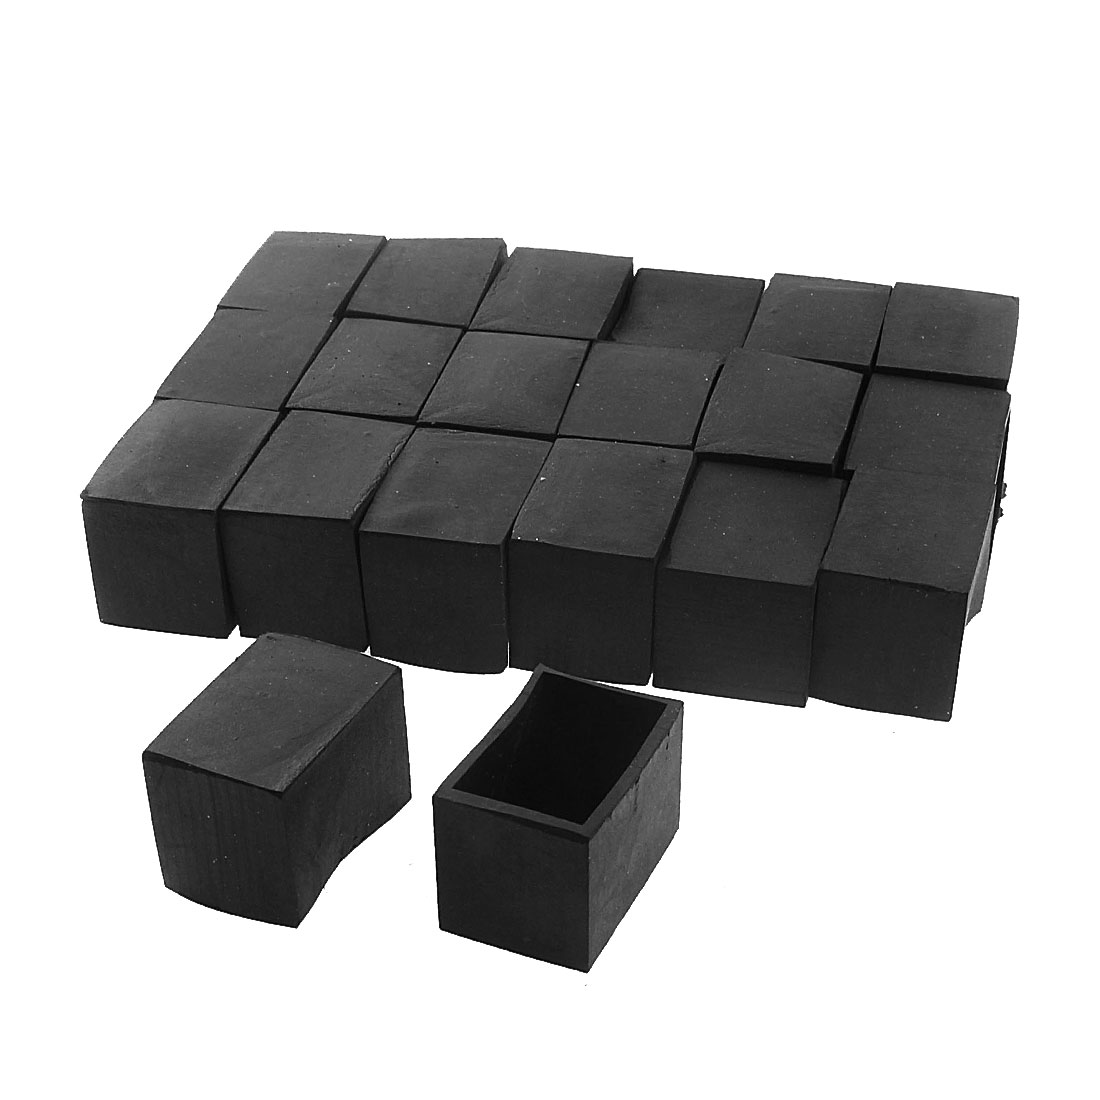 30mm x 20mm Rectangle Shape Furniture Table Desk Foot Leg Rubber End Cap Cover Black 20pcs